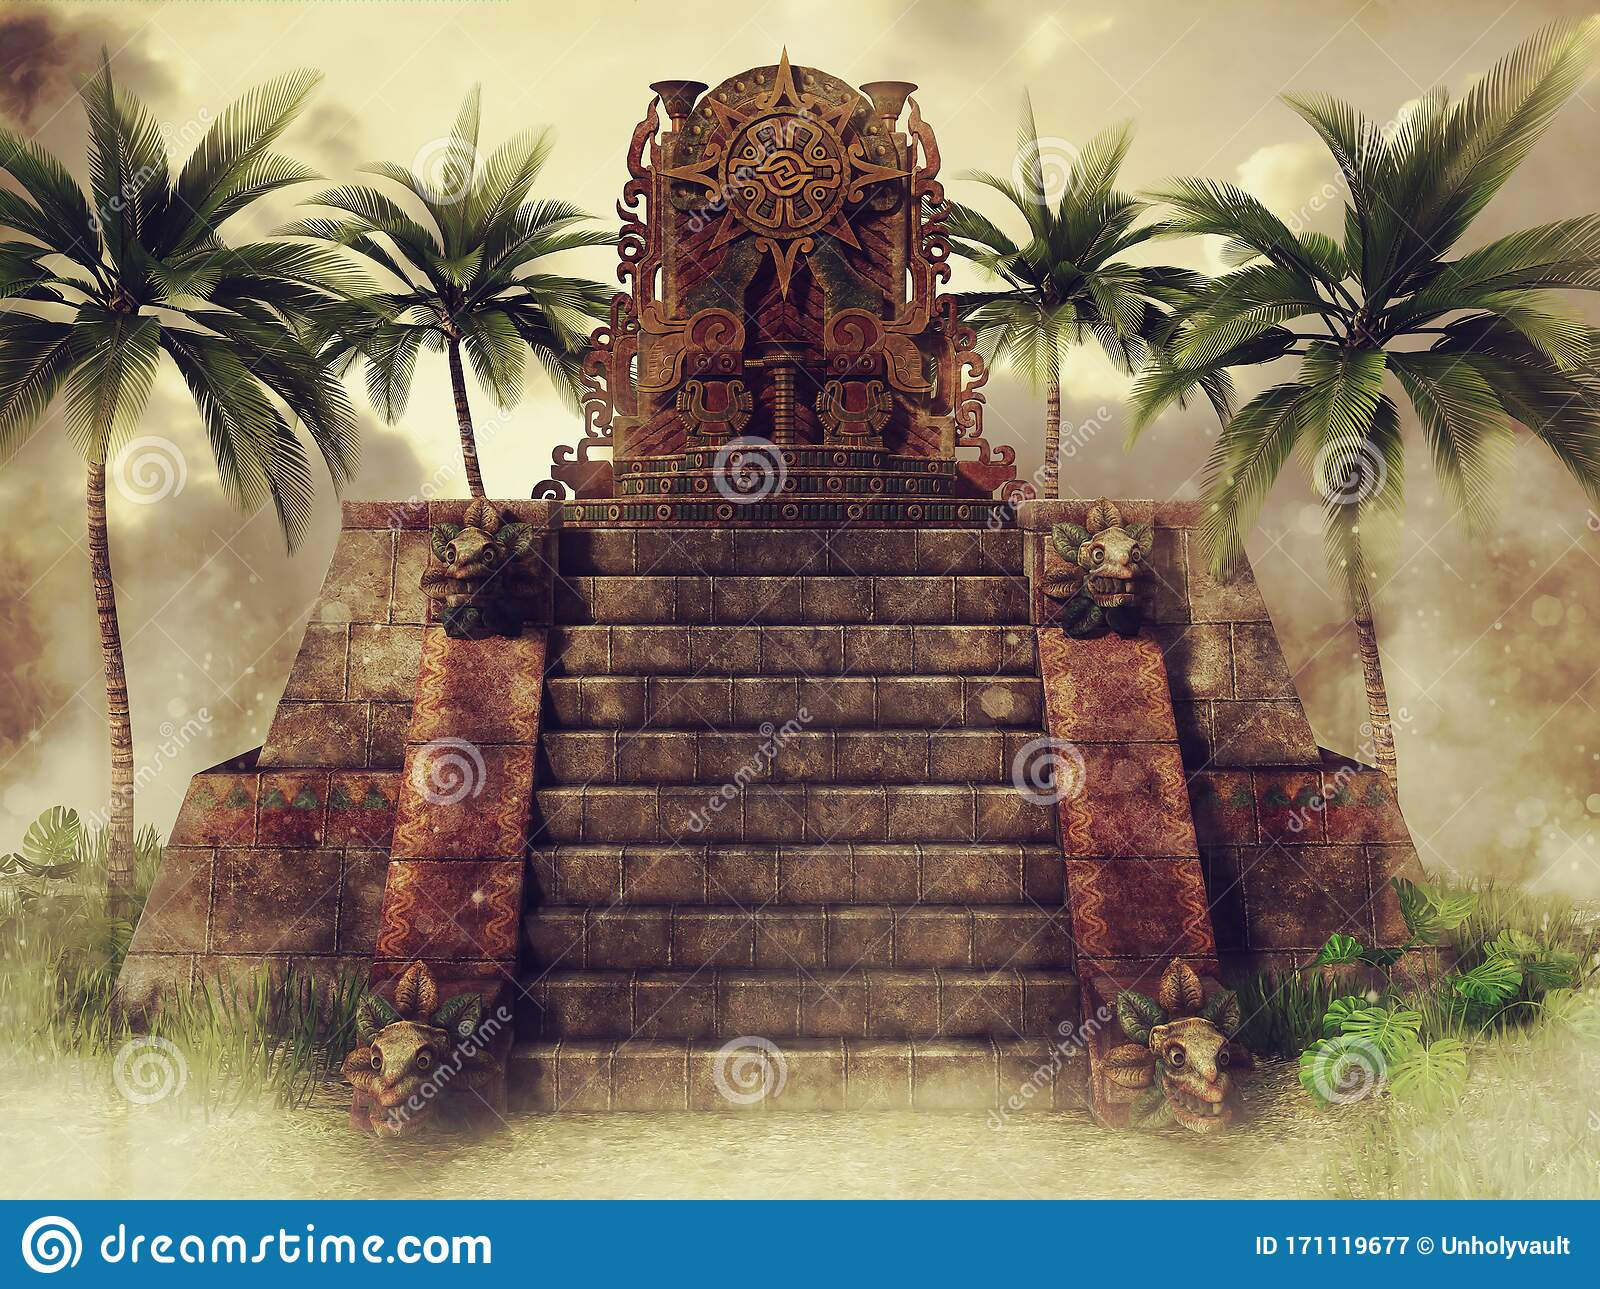 Temple Stairs Stock Illustrations – 1,136 Temple Stairs Stock  Illustrations, Vectors & Clipart - Dreamstime